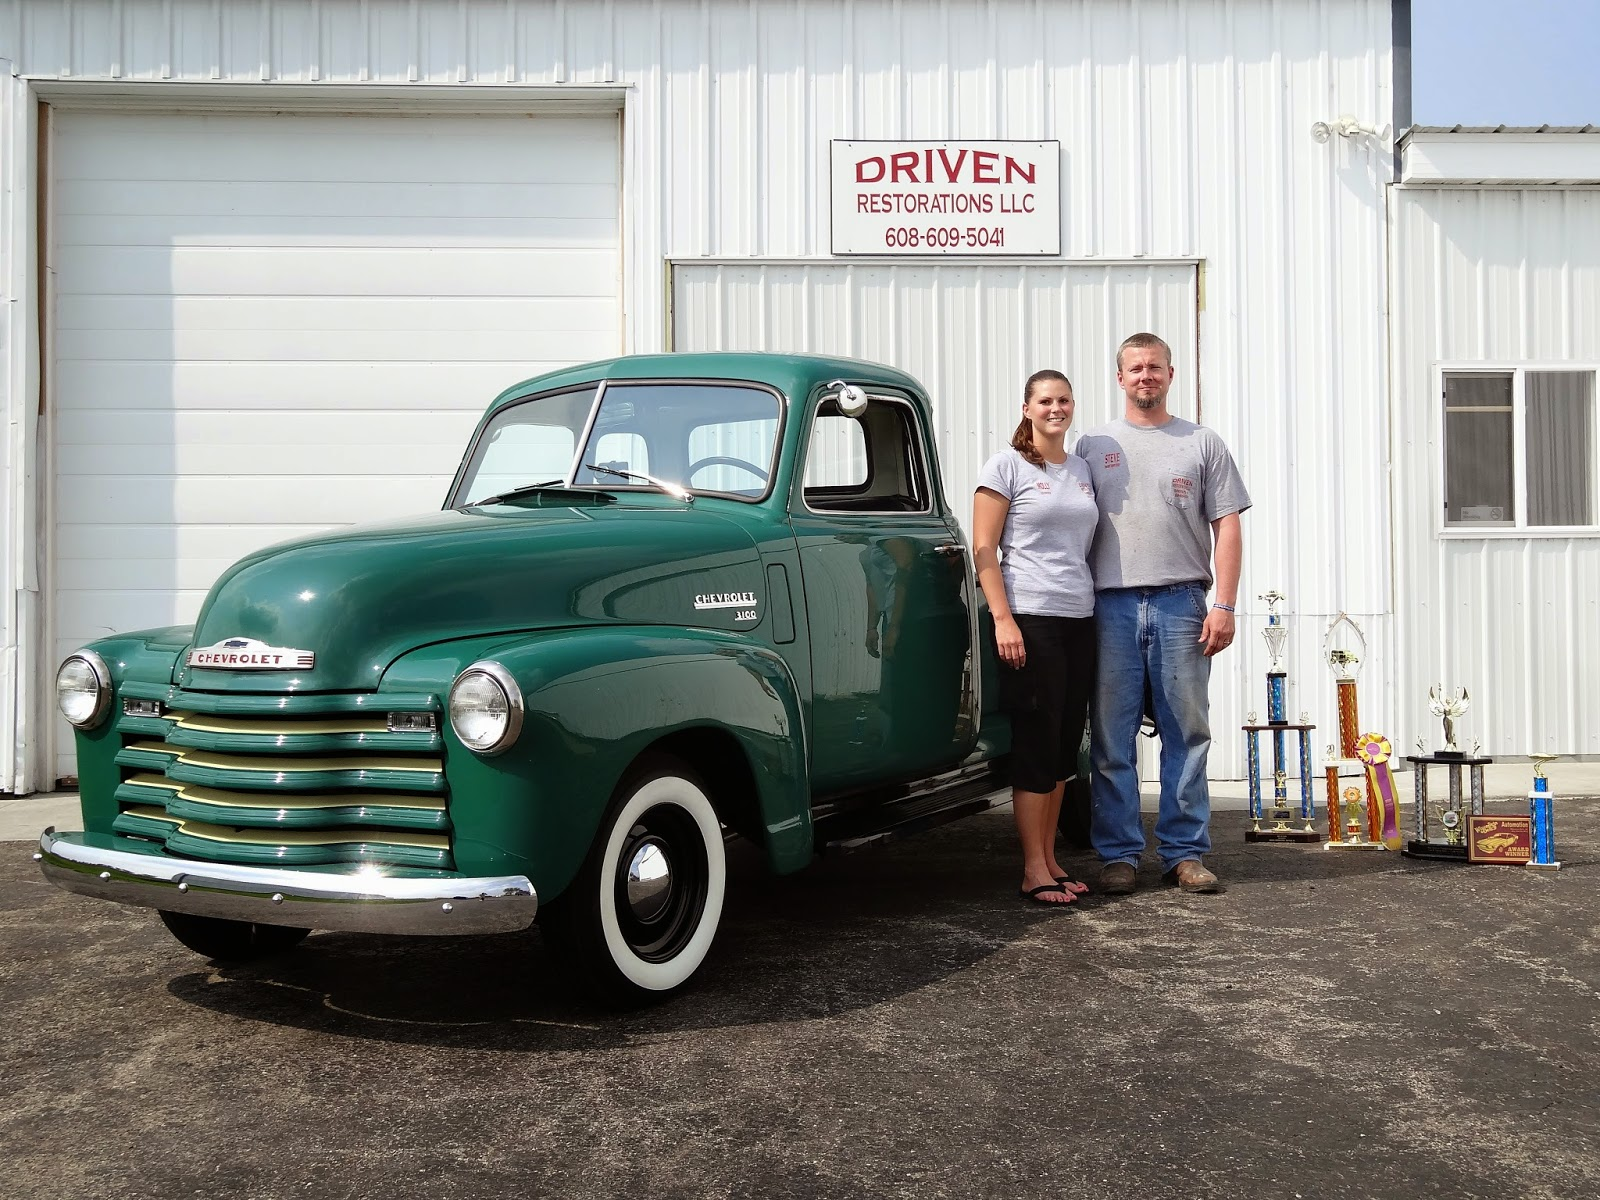 Owners of Driven Restorations provide car and truck restoration